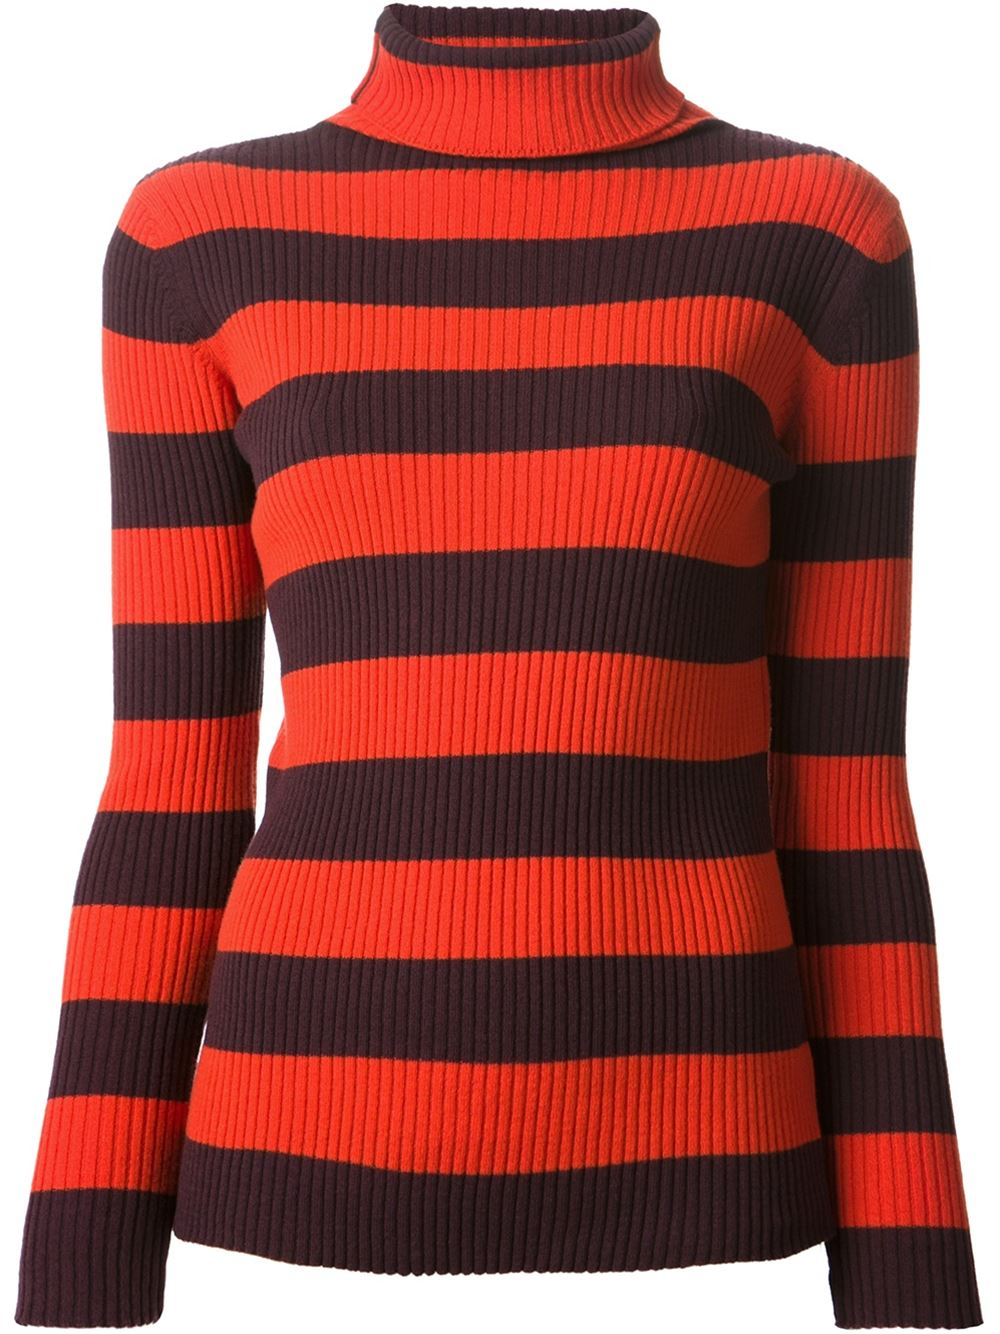 Multicolour cashmere-wool blend ribbed striped sweater from Juan Vidal